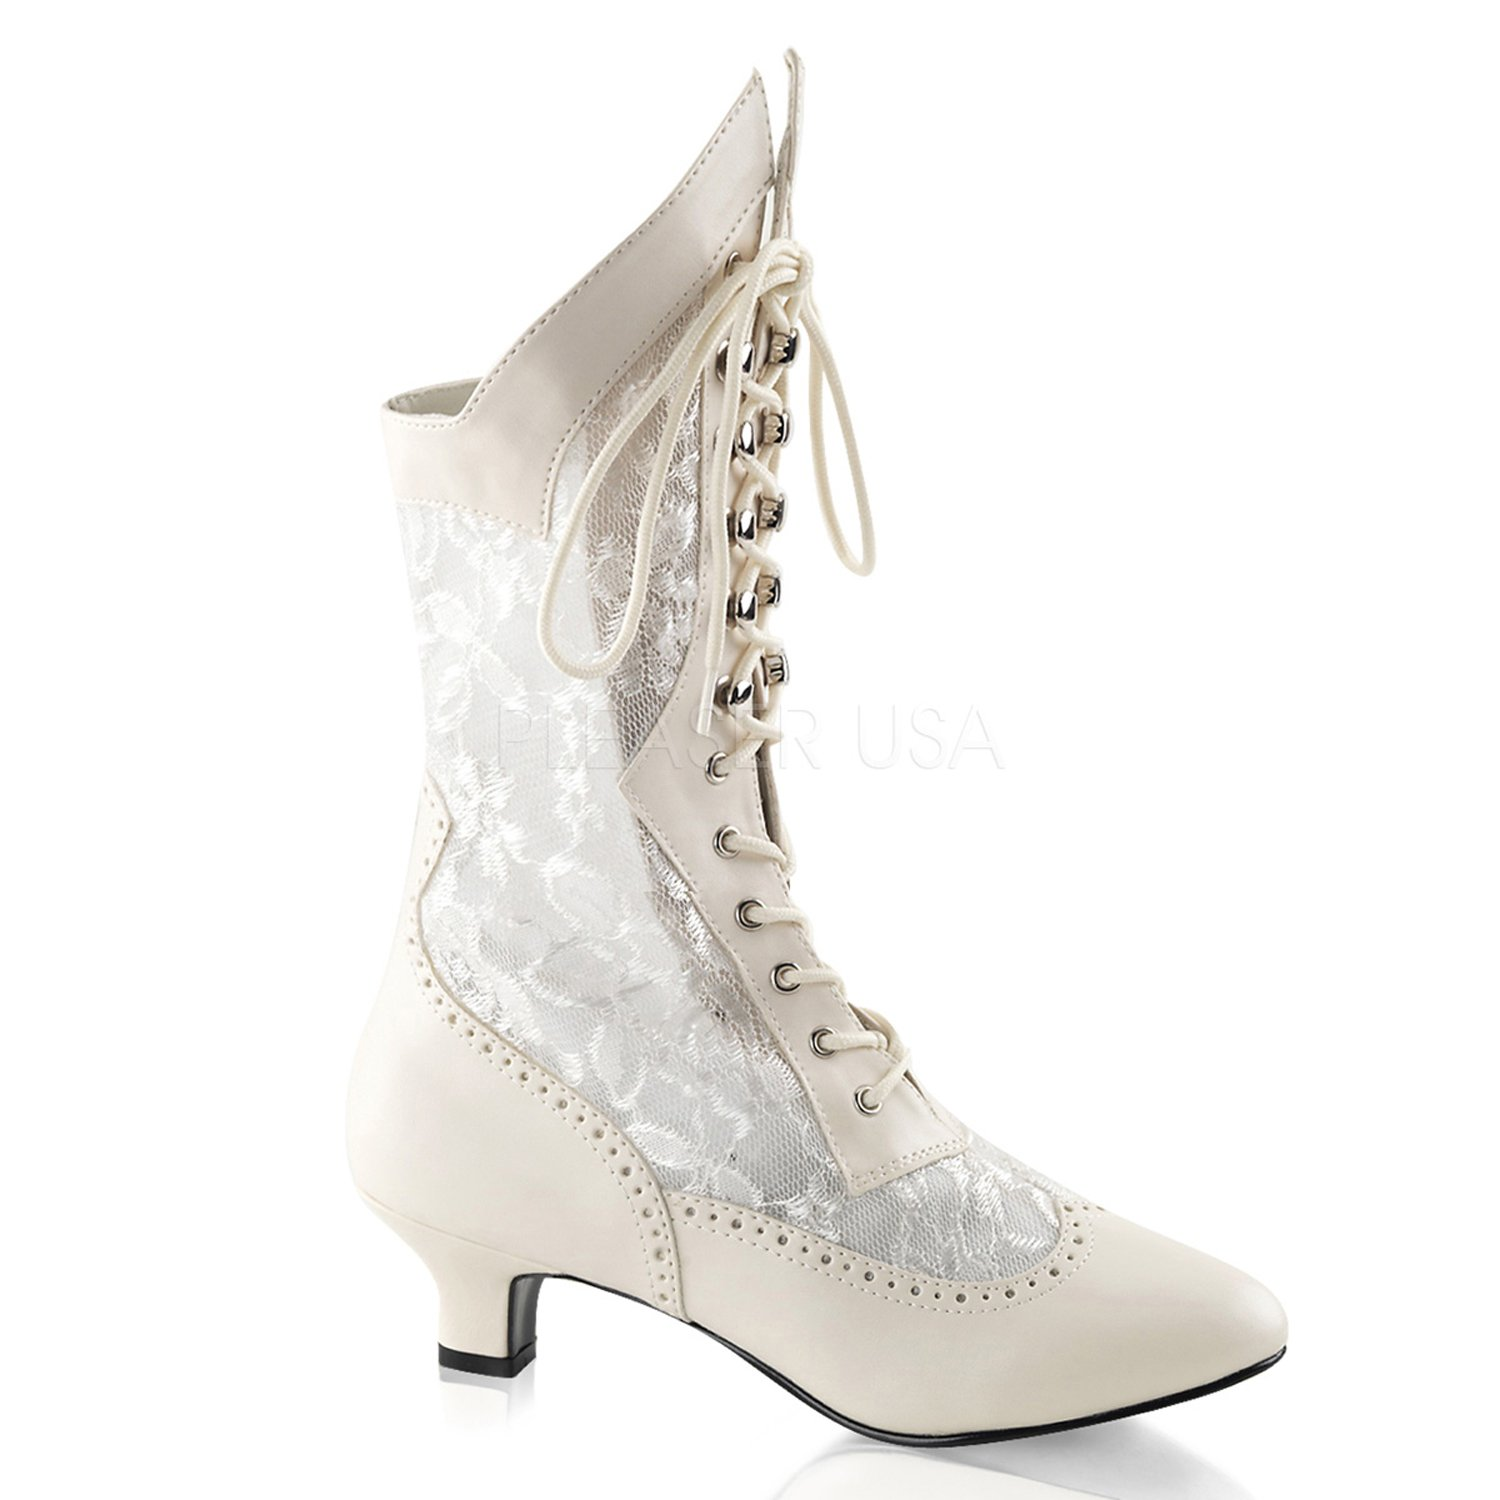 Victorian Lace Insert High Wedding Boots Lace Goth Granny Boots 115 B0042QMDUI 7|Ivory